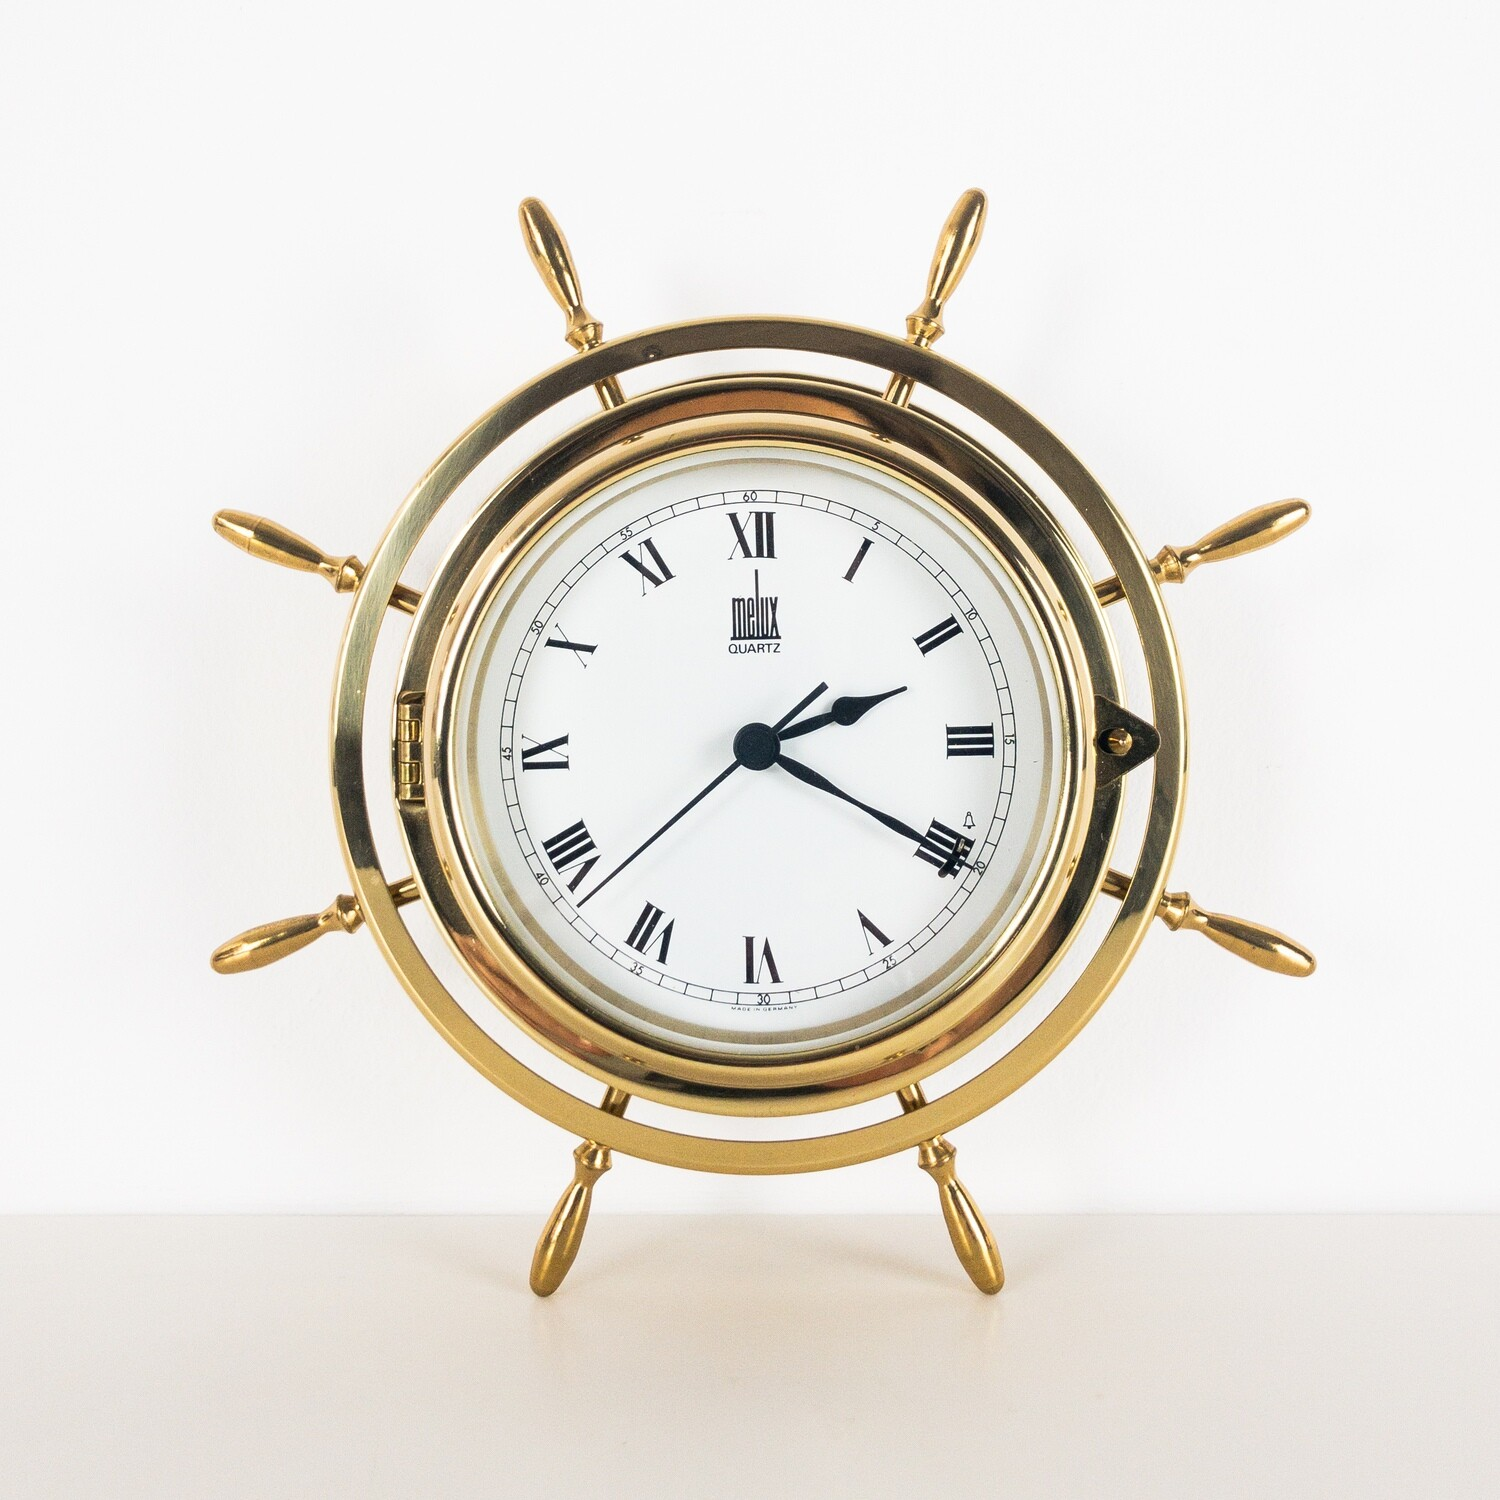 Rudder wall clock by Melux